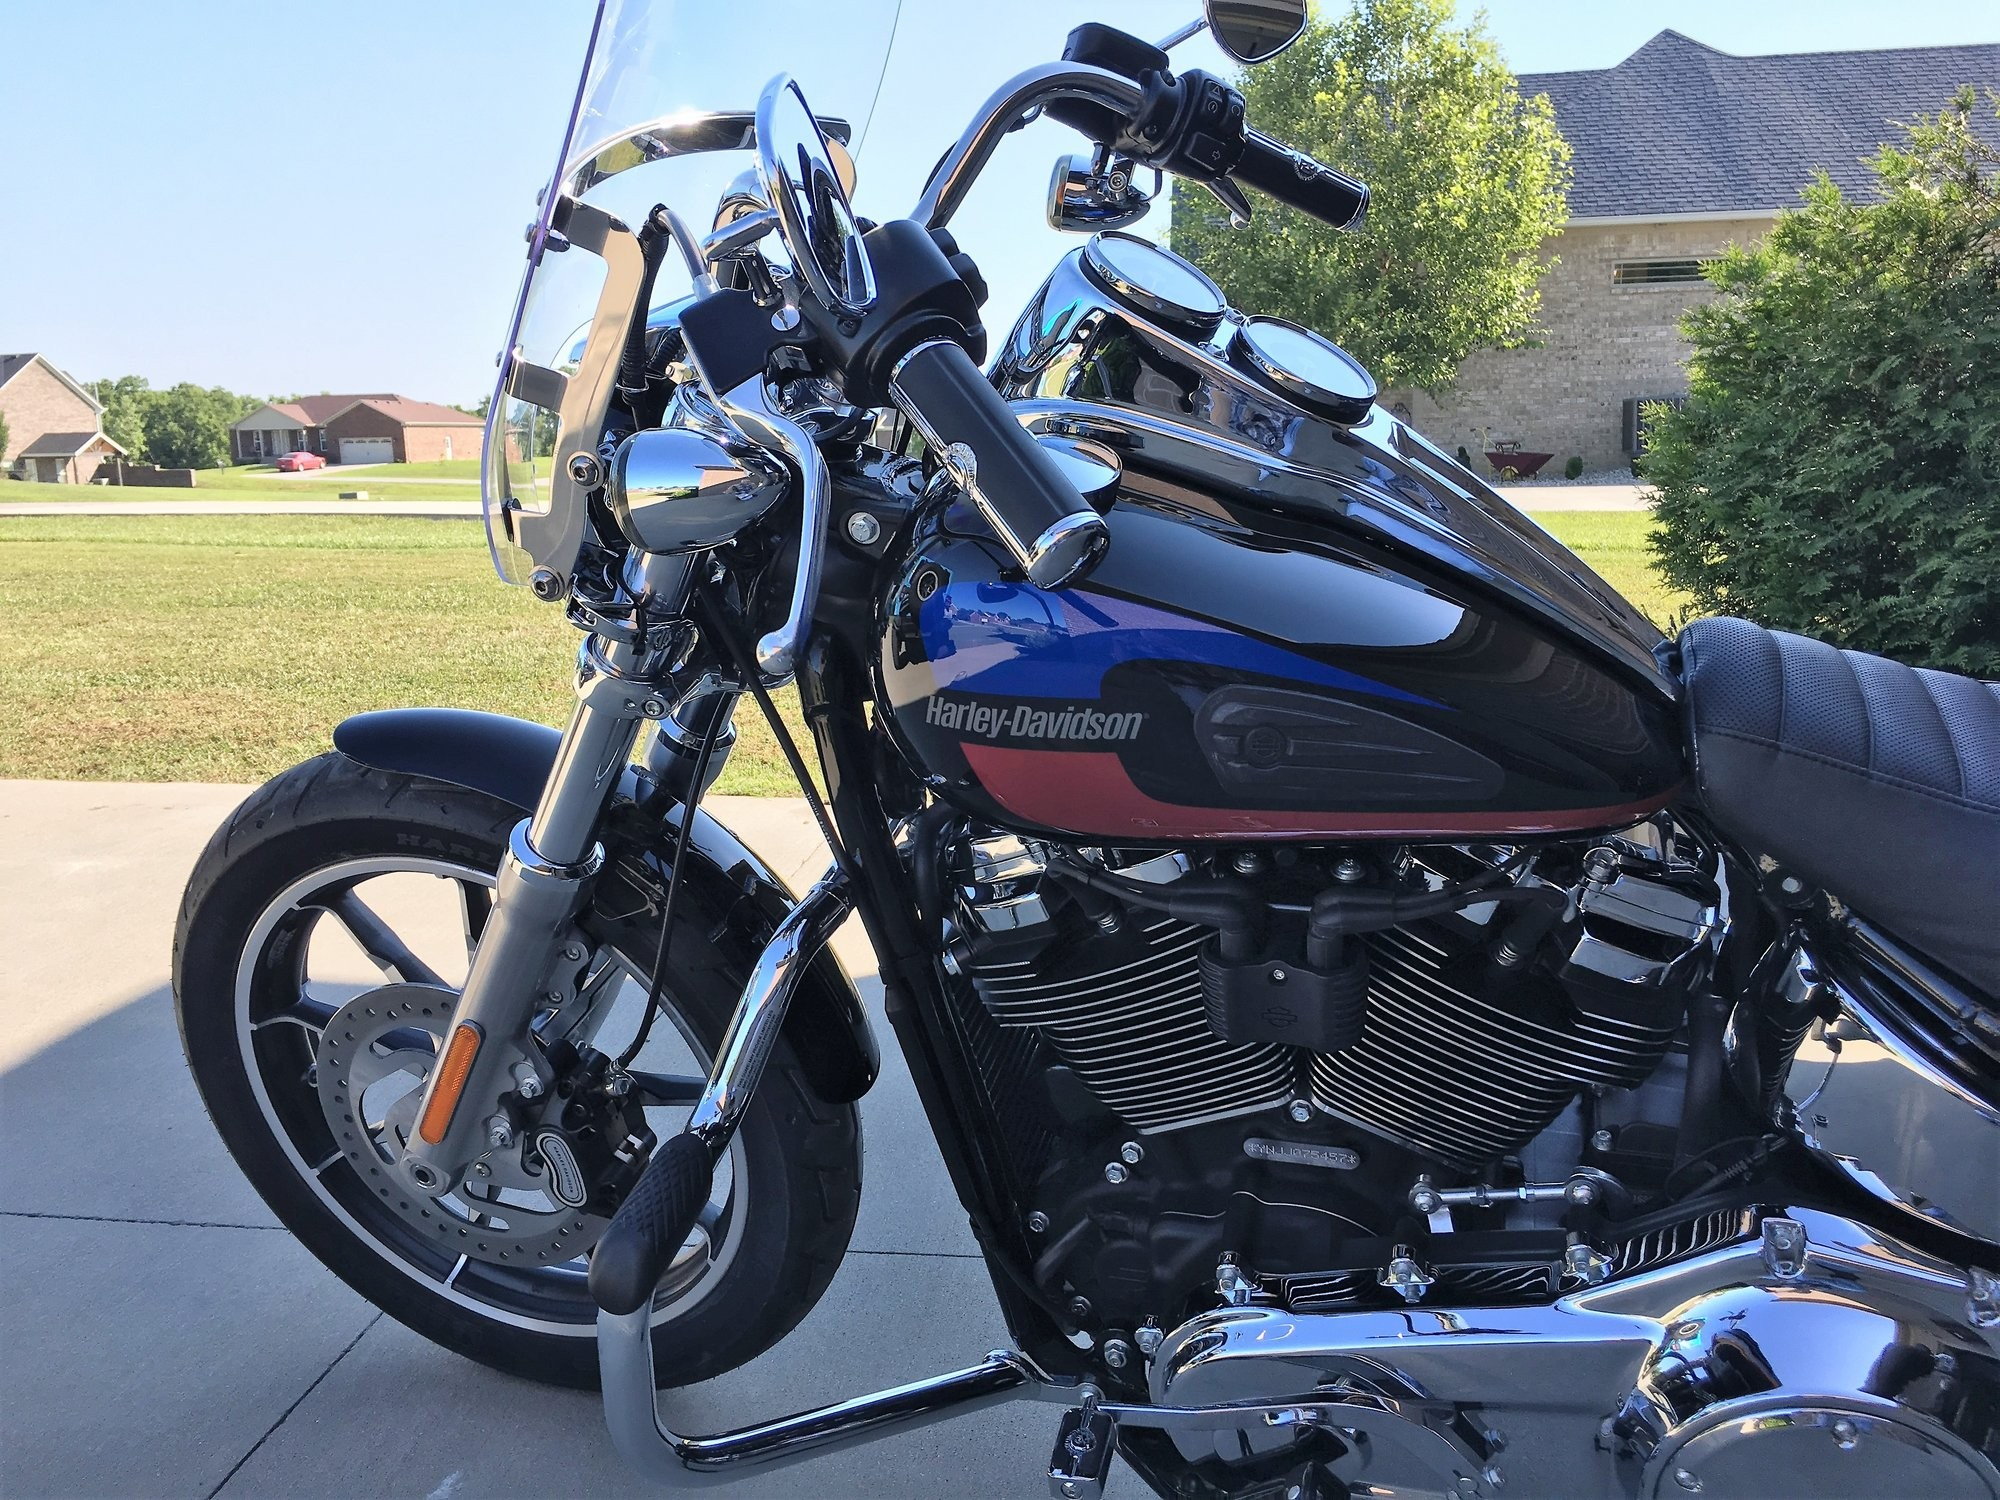 Which Post is On Harley Coil Coil Cover 18 softails Harley Davidson forums Of Which Post is On Harley Coil